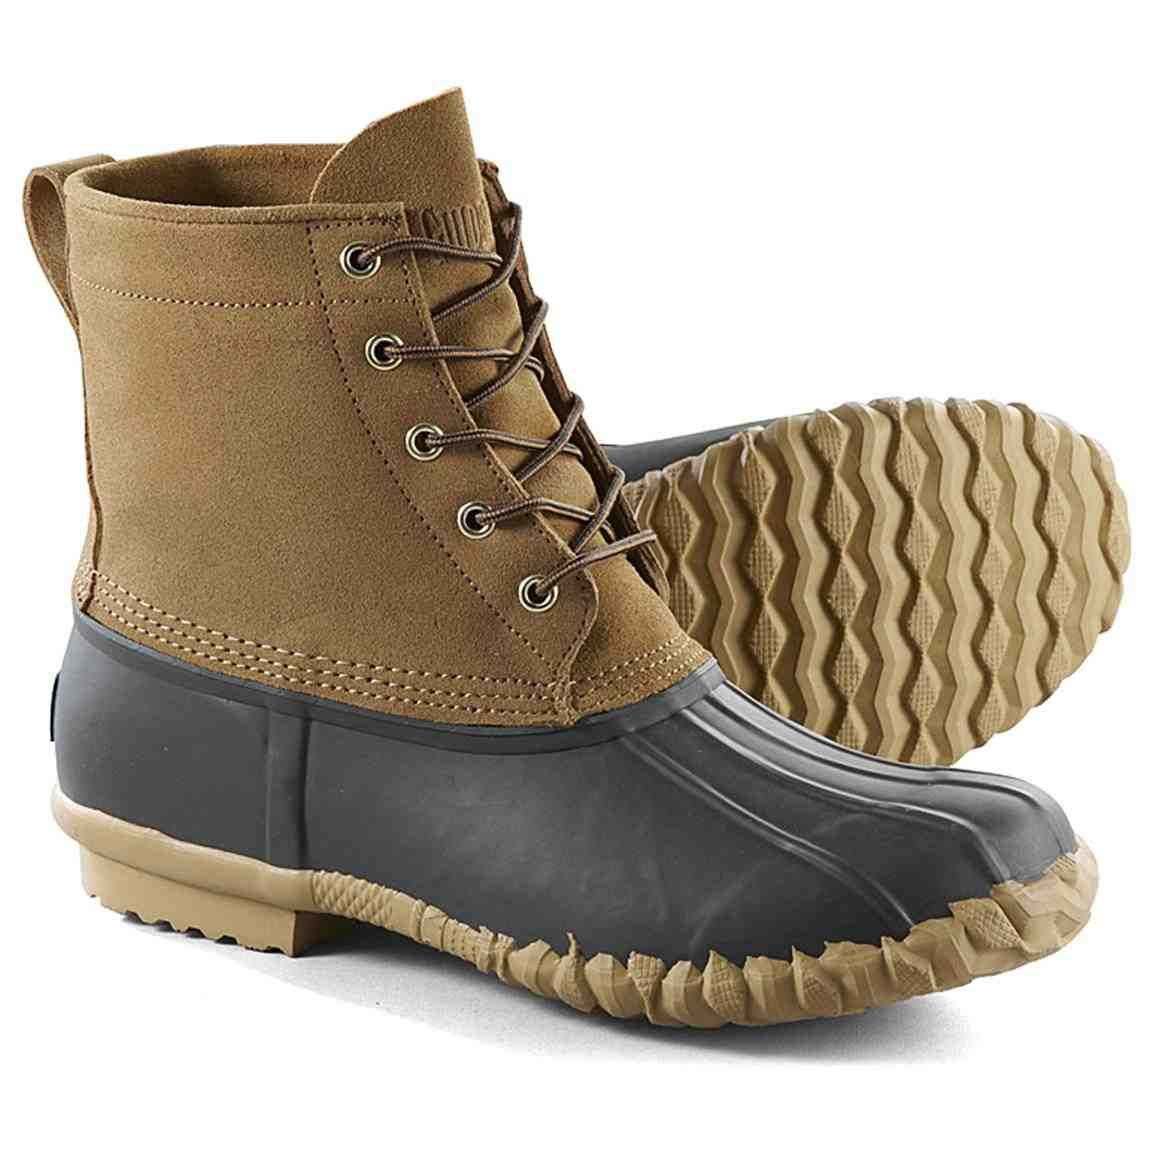 Guide Gear Lace-Up Insulated Duck Boots 400-gram